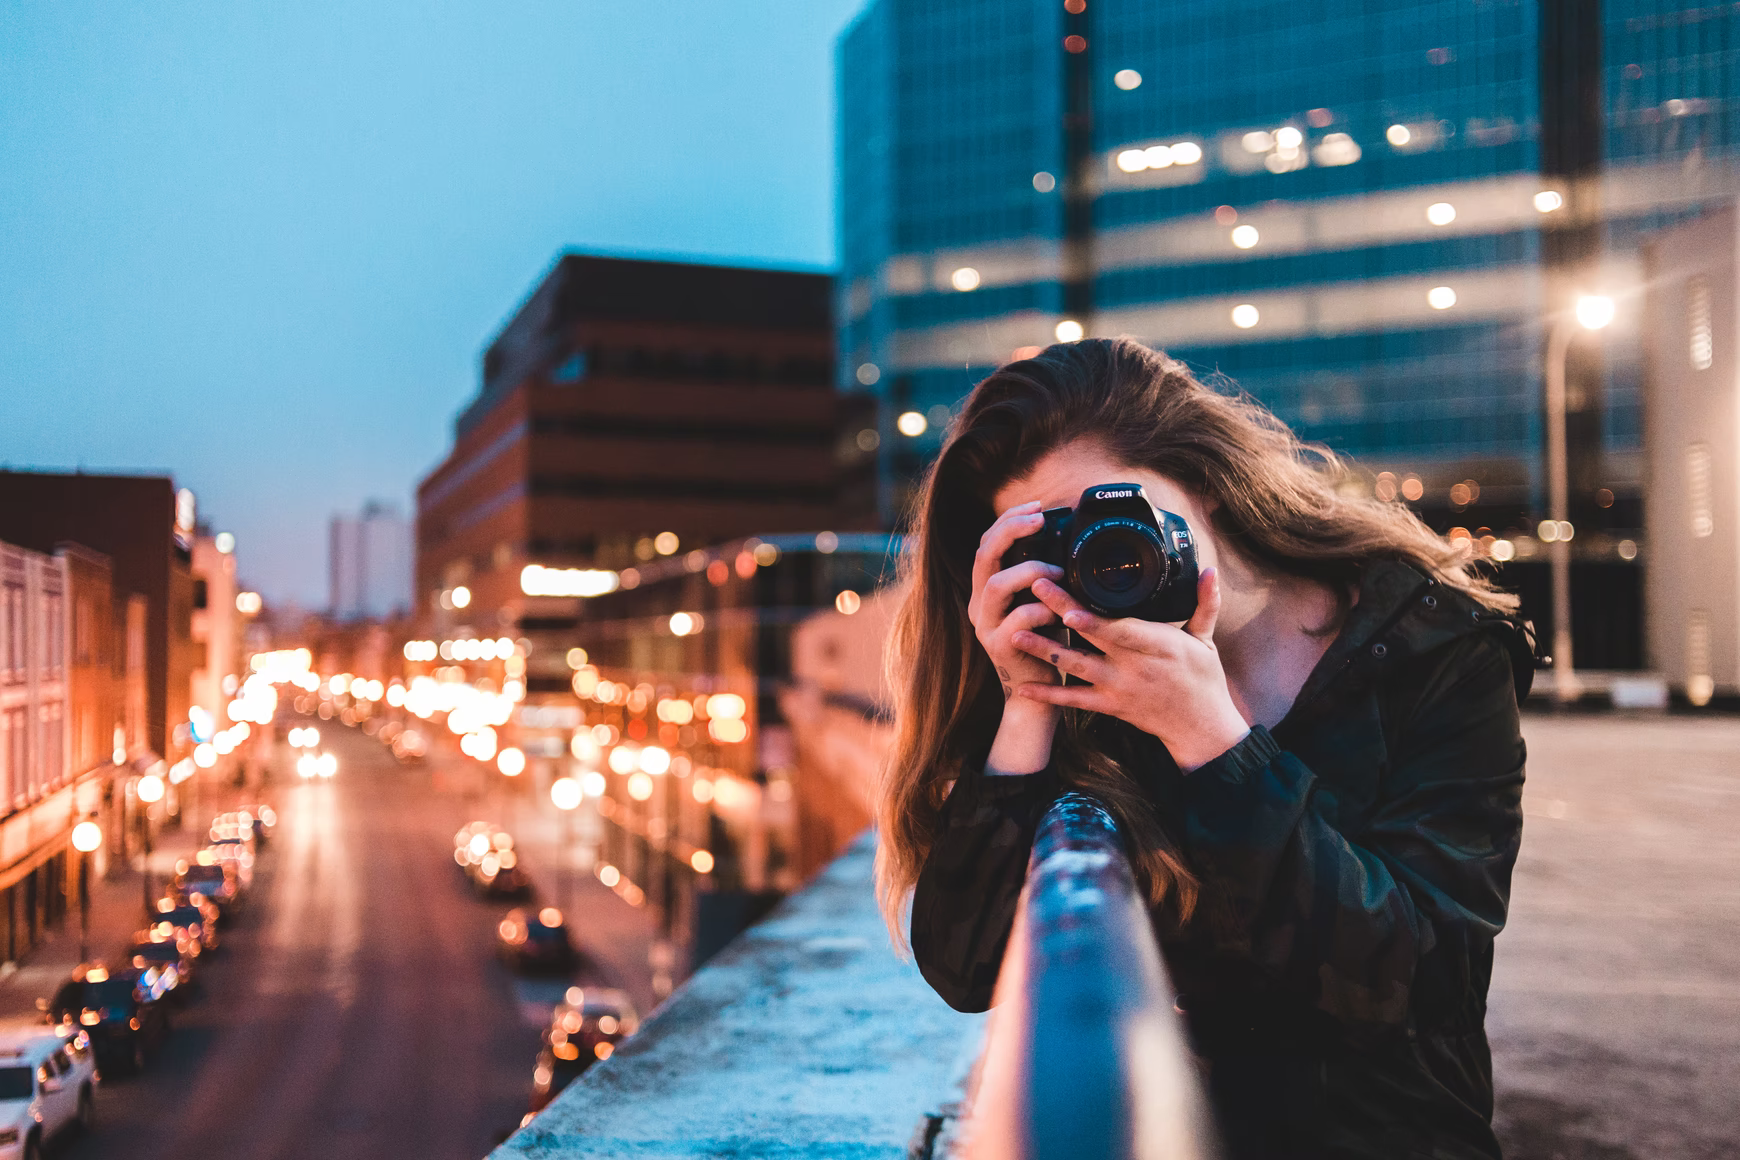 Tips for starting a photography business